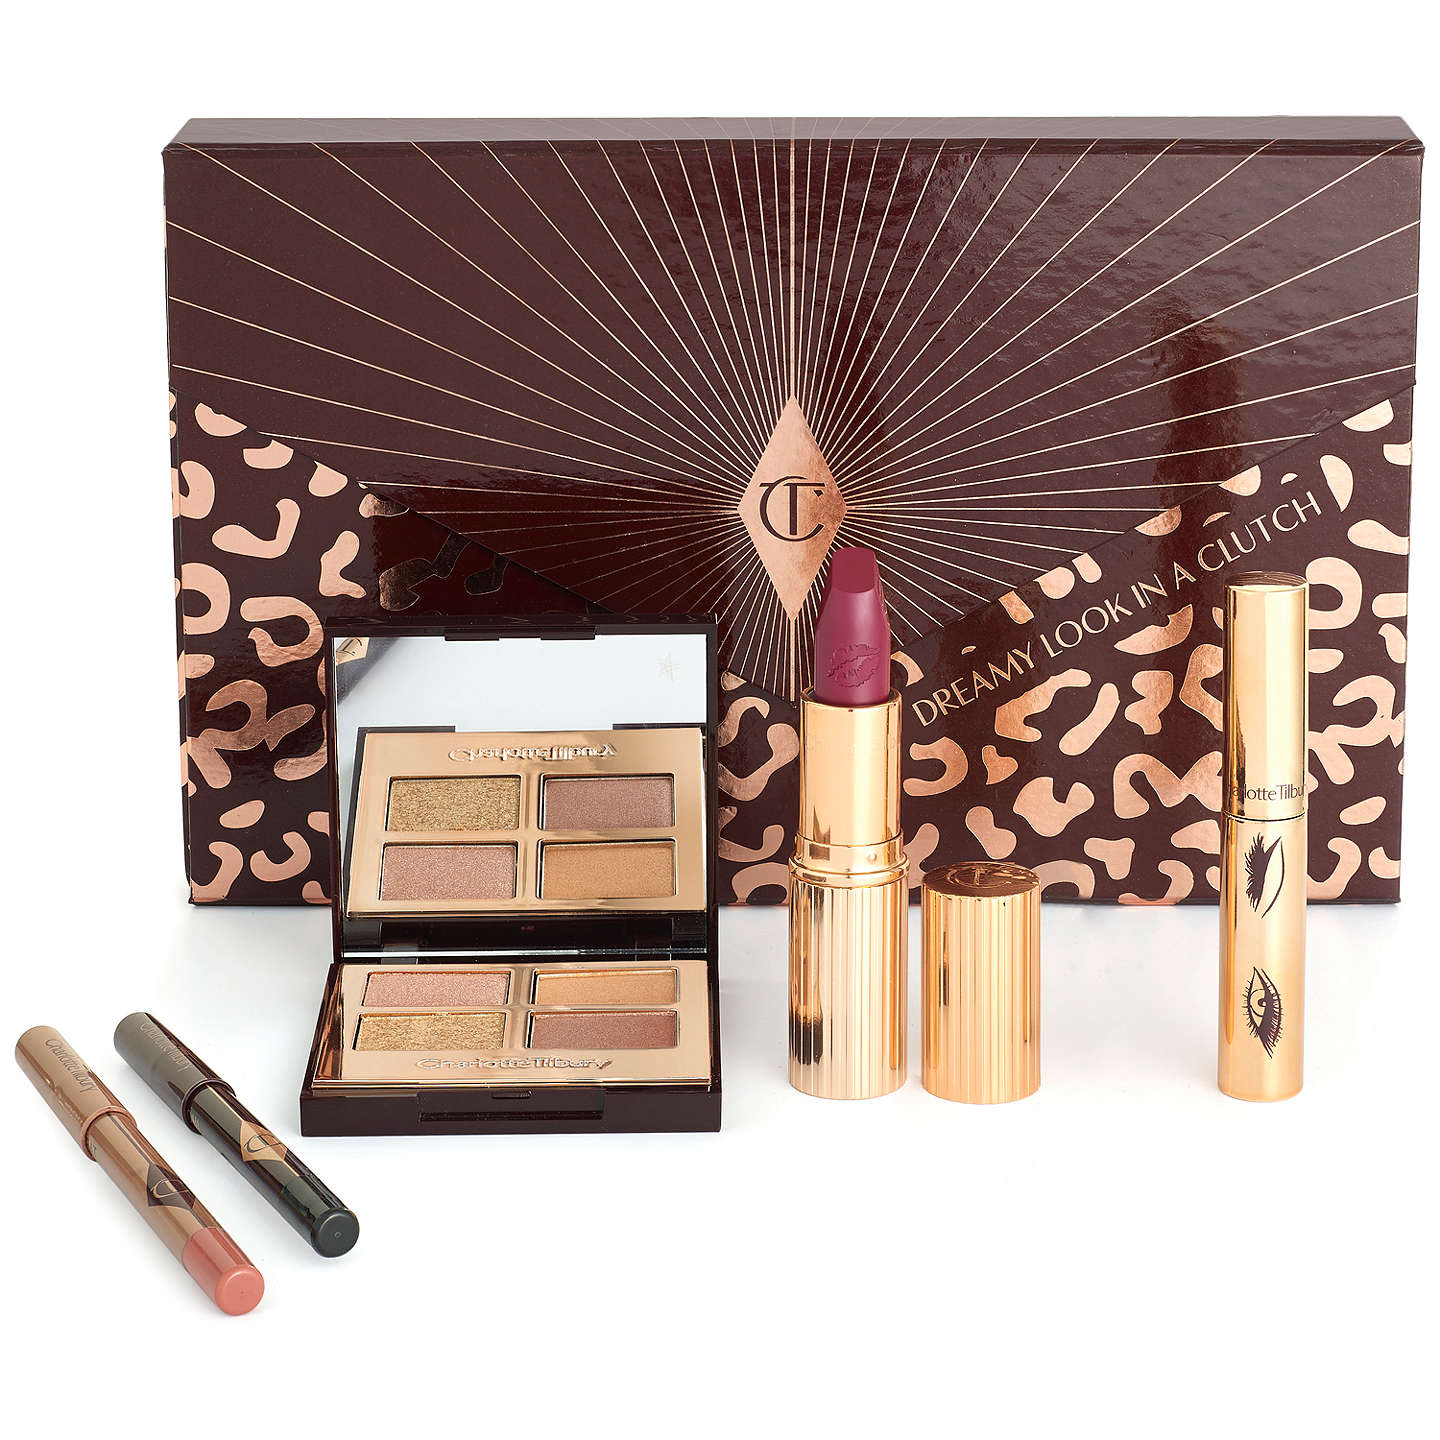 BuyCharlotte Tilbury Dreamy Look In A Clutch Makeup Gift Set Online at johnlewis.com